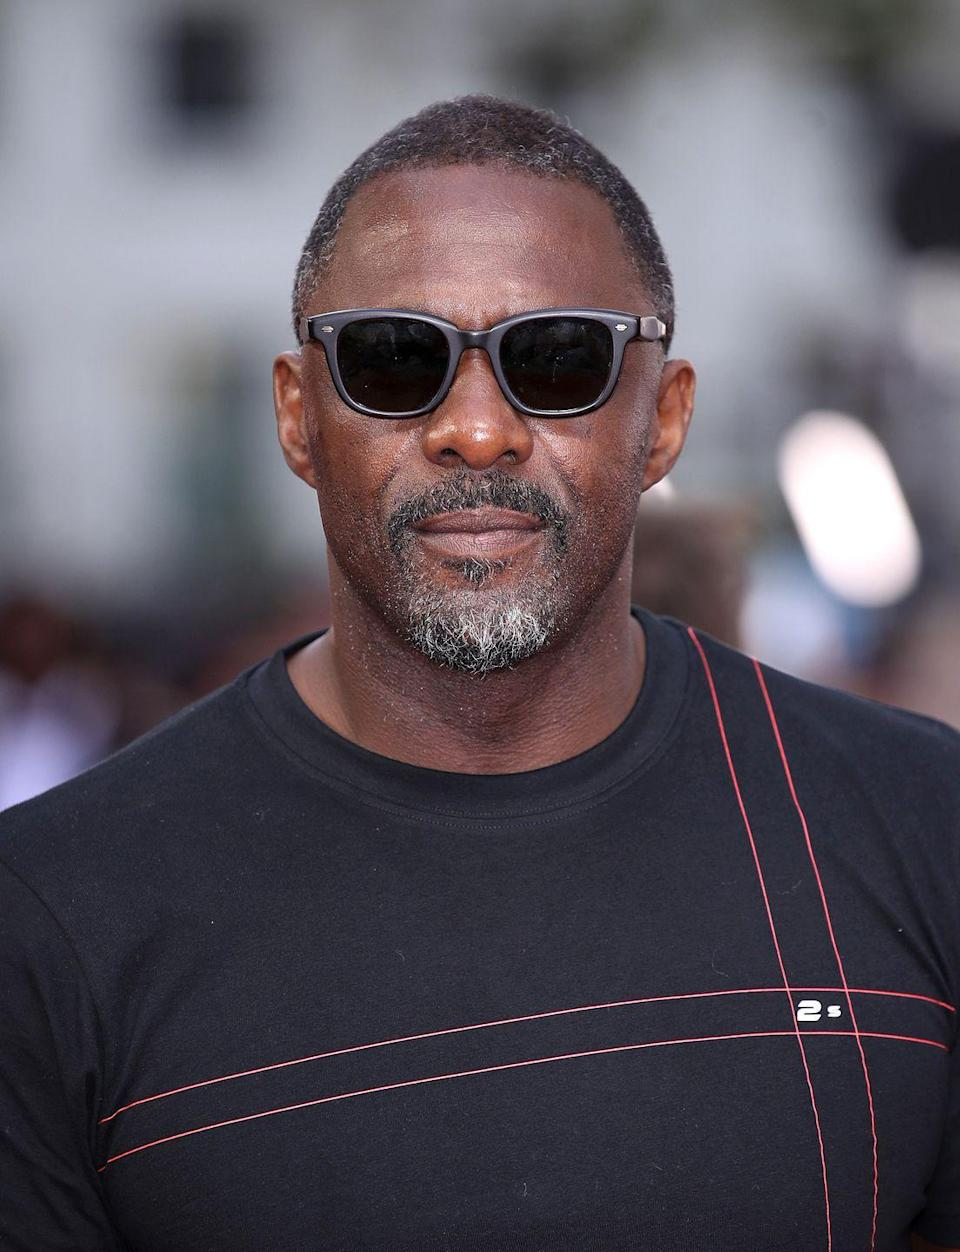 "<p>The difference is, now his beard is gray. But that's not holding him back. In fact, just last year Elba was named <a href=""https://people.com/movies/idris-elba-sexiest-man-alive-2018-reveal/"" rel=""nofollow noopener"" target=""_blank"" data-ylk=""slk:PEOPLE's Sexiest Man Alive"" class=""link rapid-noclick-resp""><em>PEOPLE's</em> Sexiest Man Alive</a>—gray hair and all.</p>"